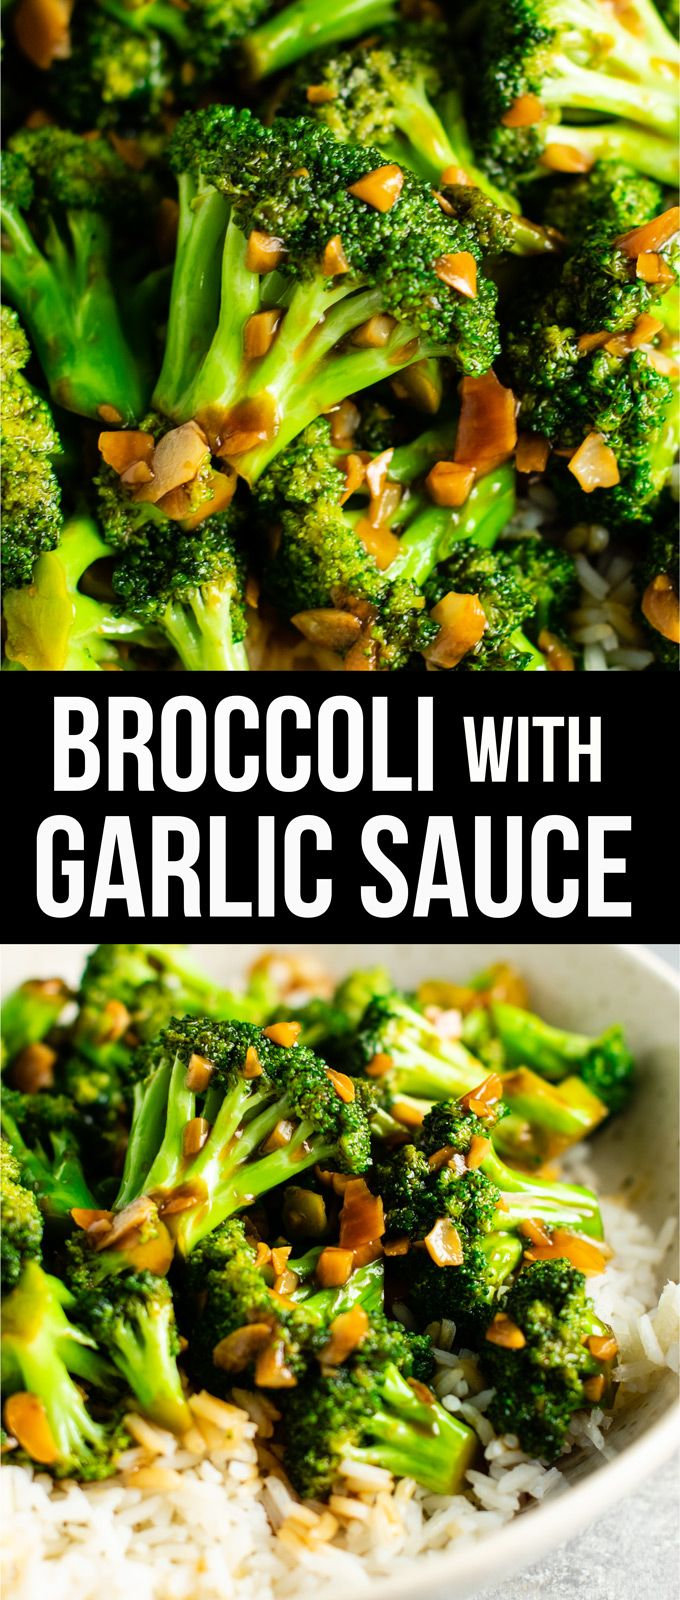 Photo of Broccoli with Garlic Sauce